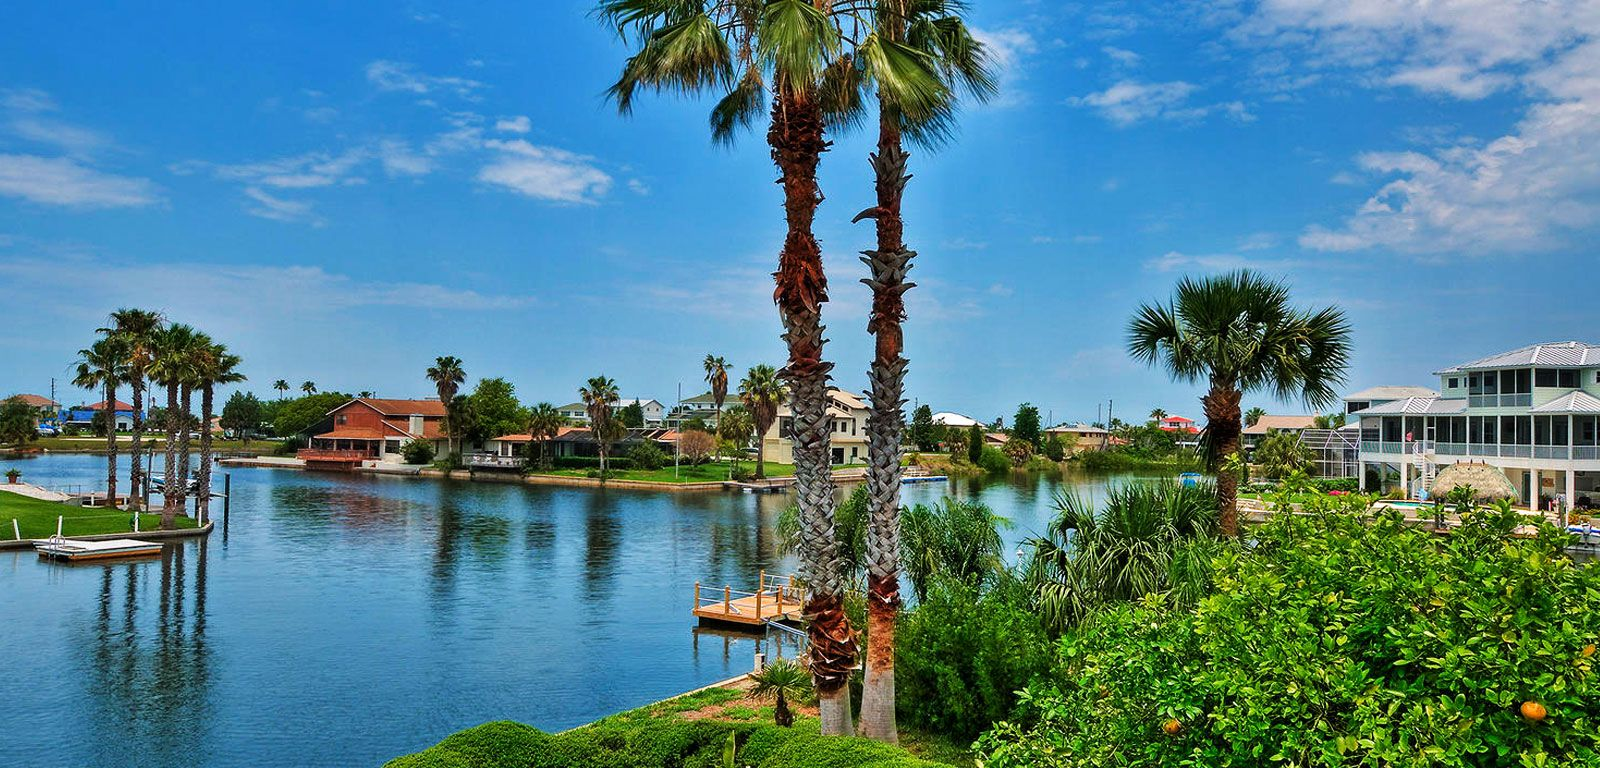 Houses on lakeside with palm trees